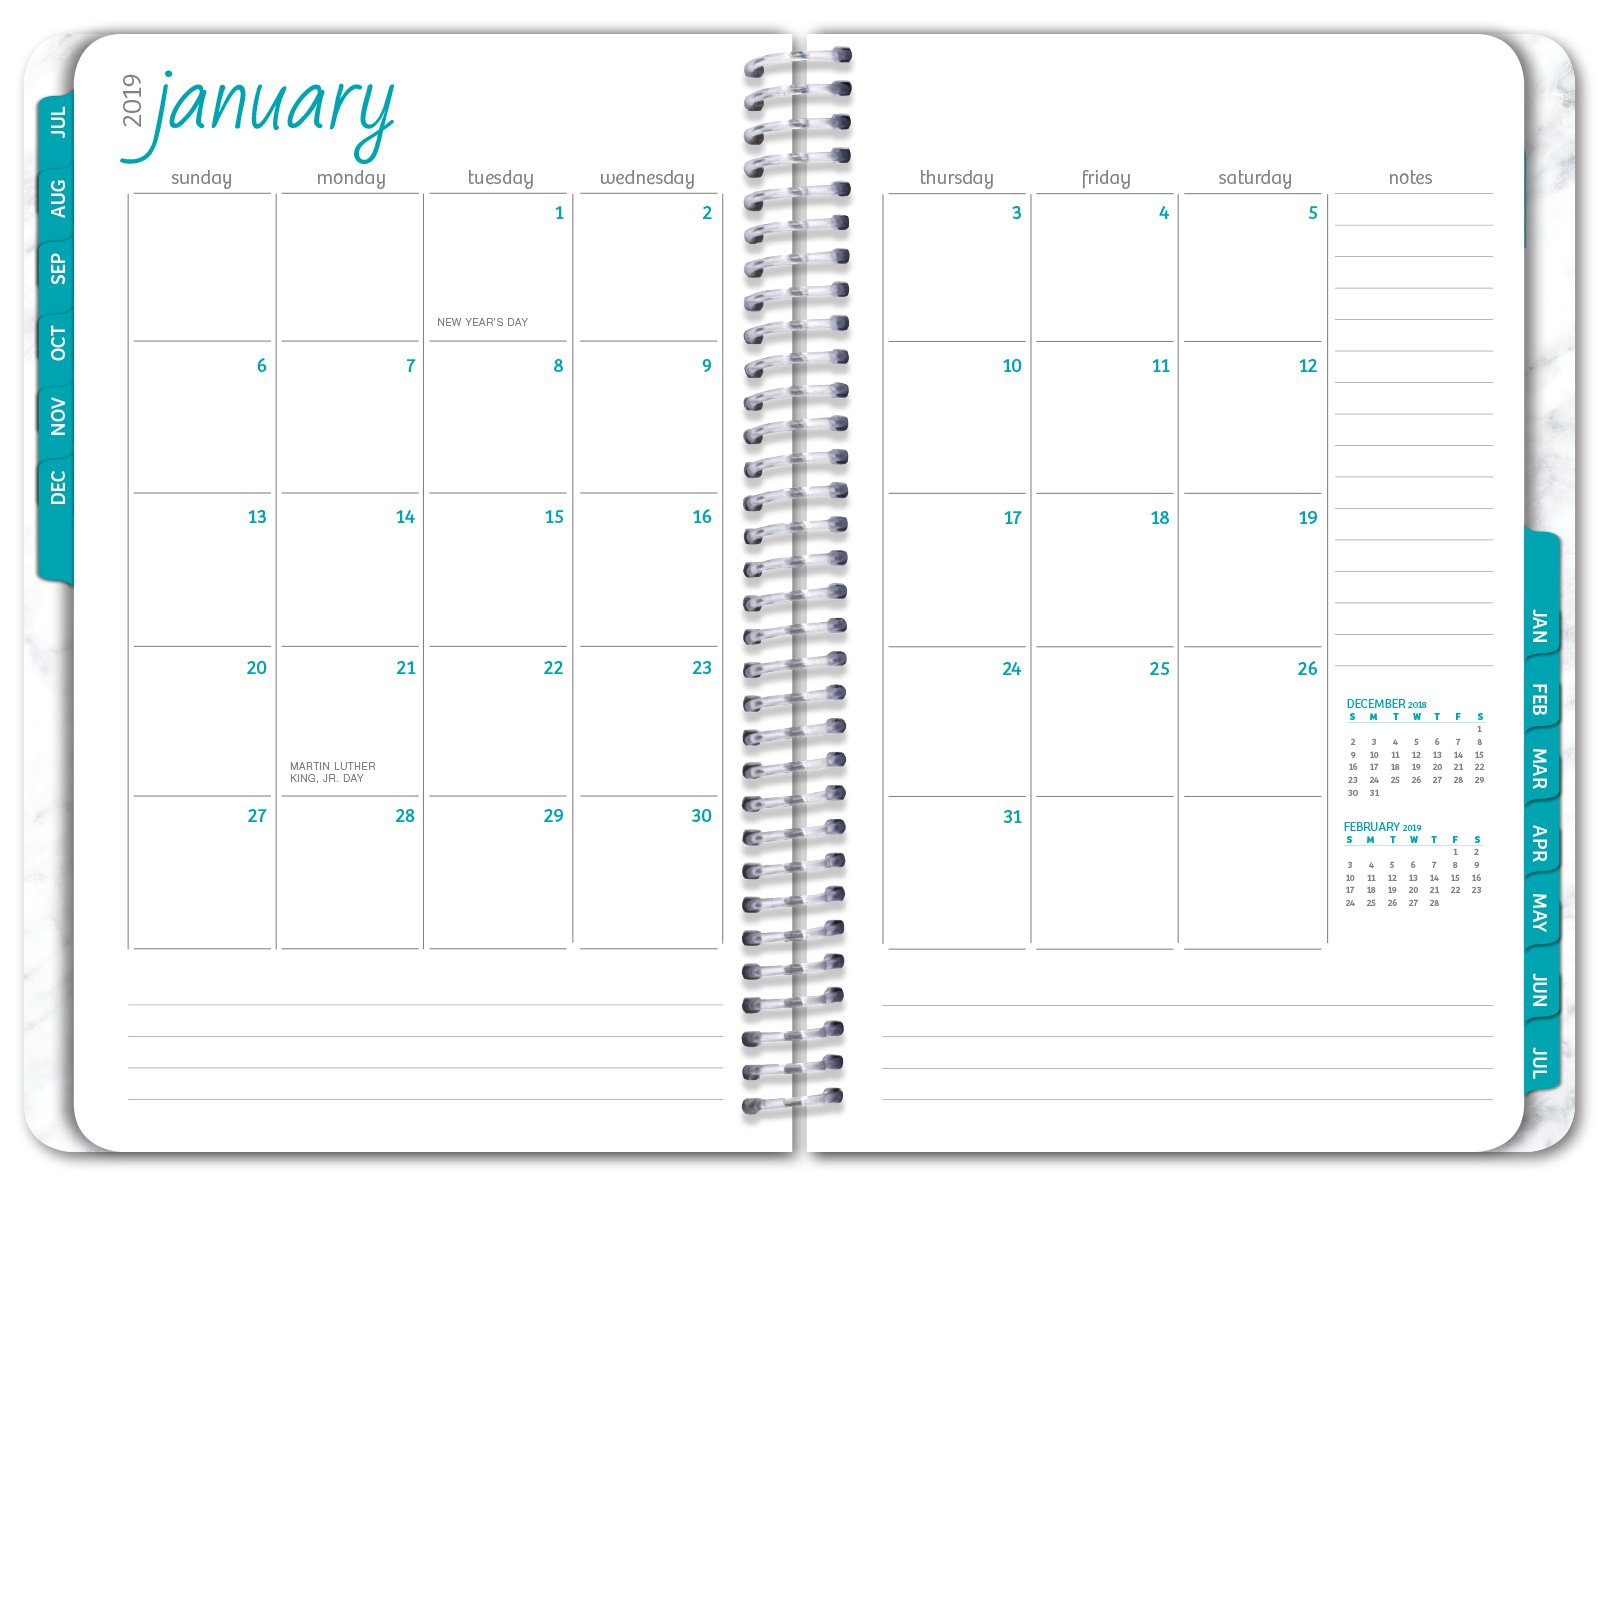 HARDCOVER Academic Year Planner 2018-2019 - 5.5''x8'' Daily Planner/Weekly Planner/Monthly Planner/Yearly Agenda. Bonus Bookmark (Grey Marble) by Global Printed Products (Image #4)